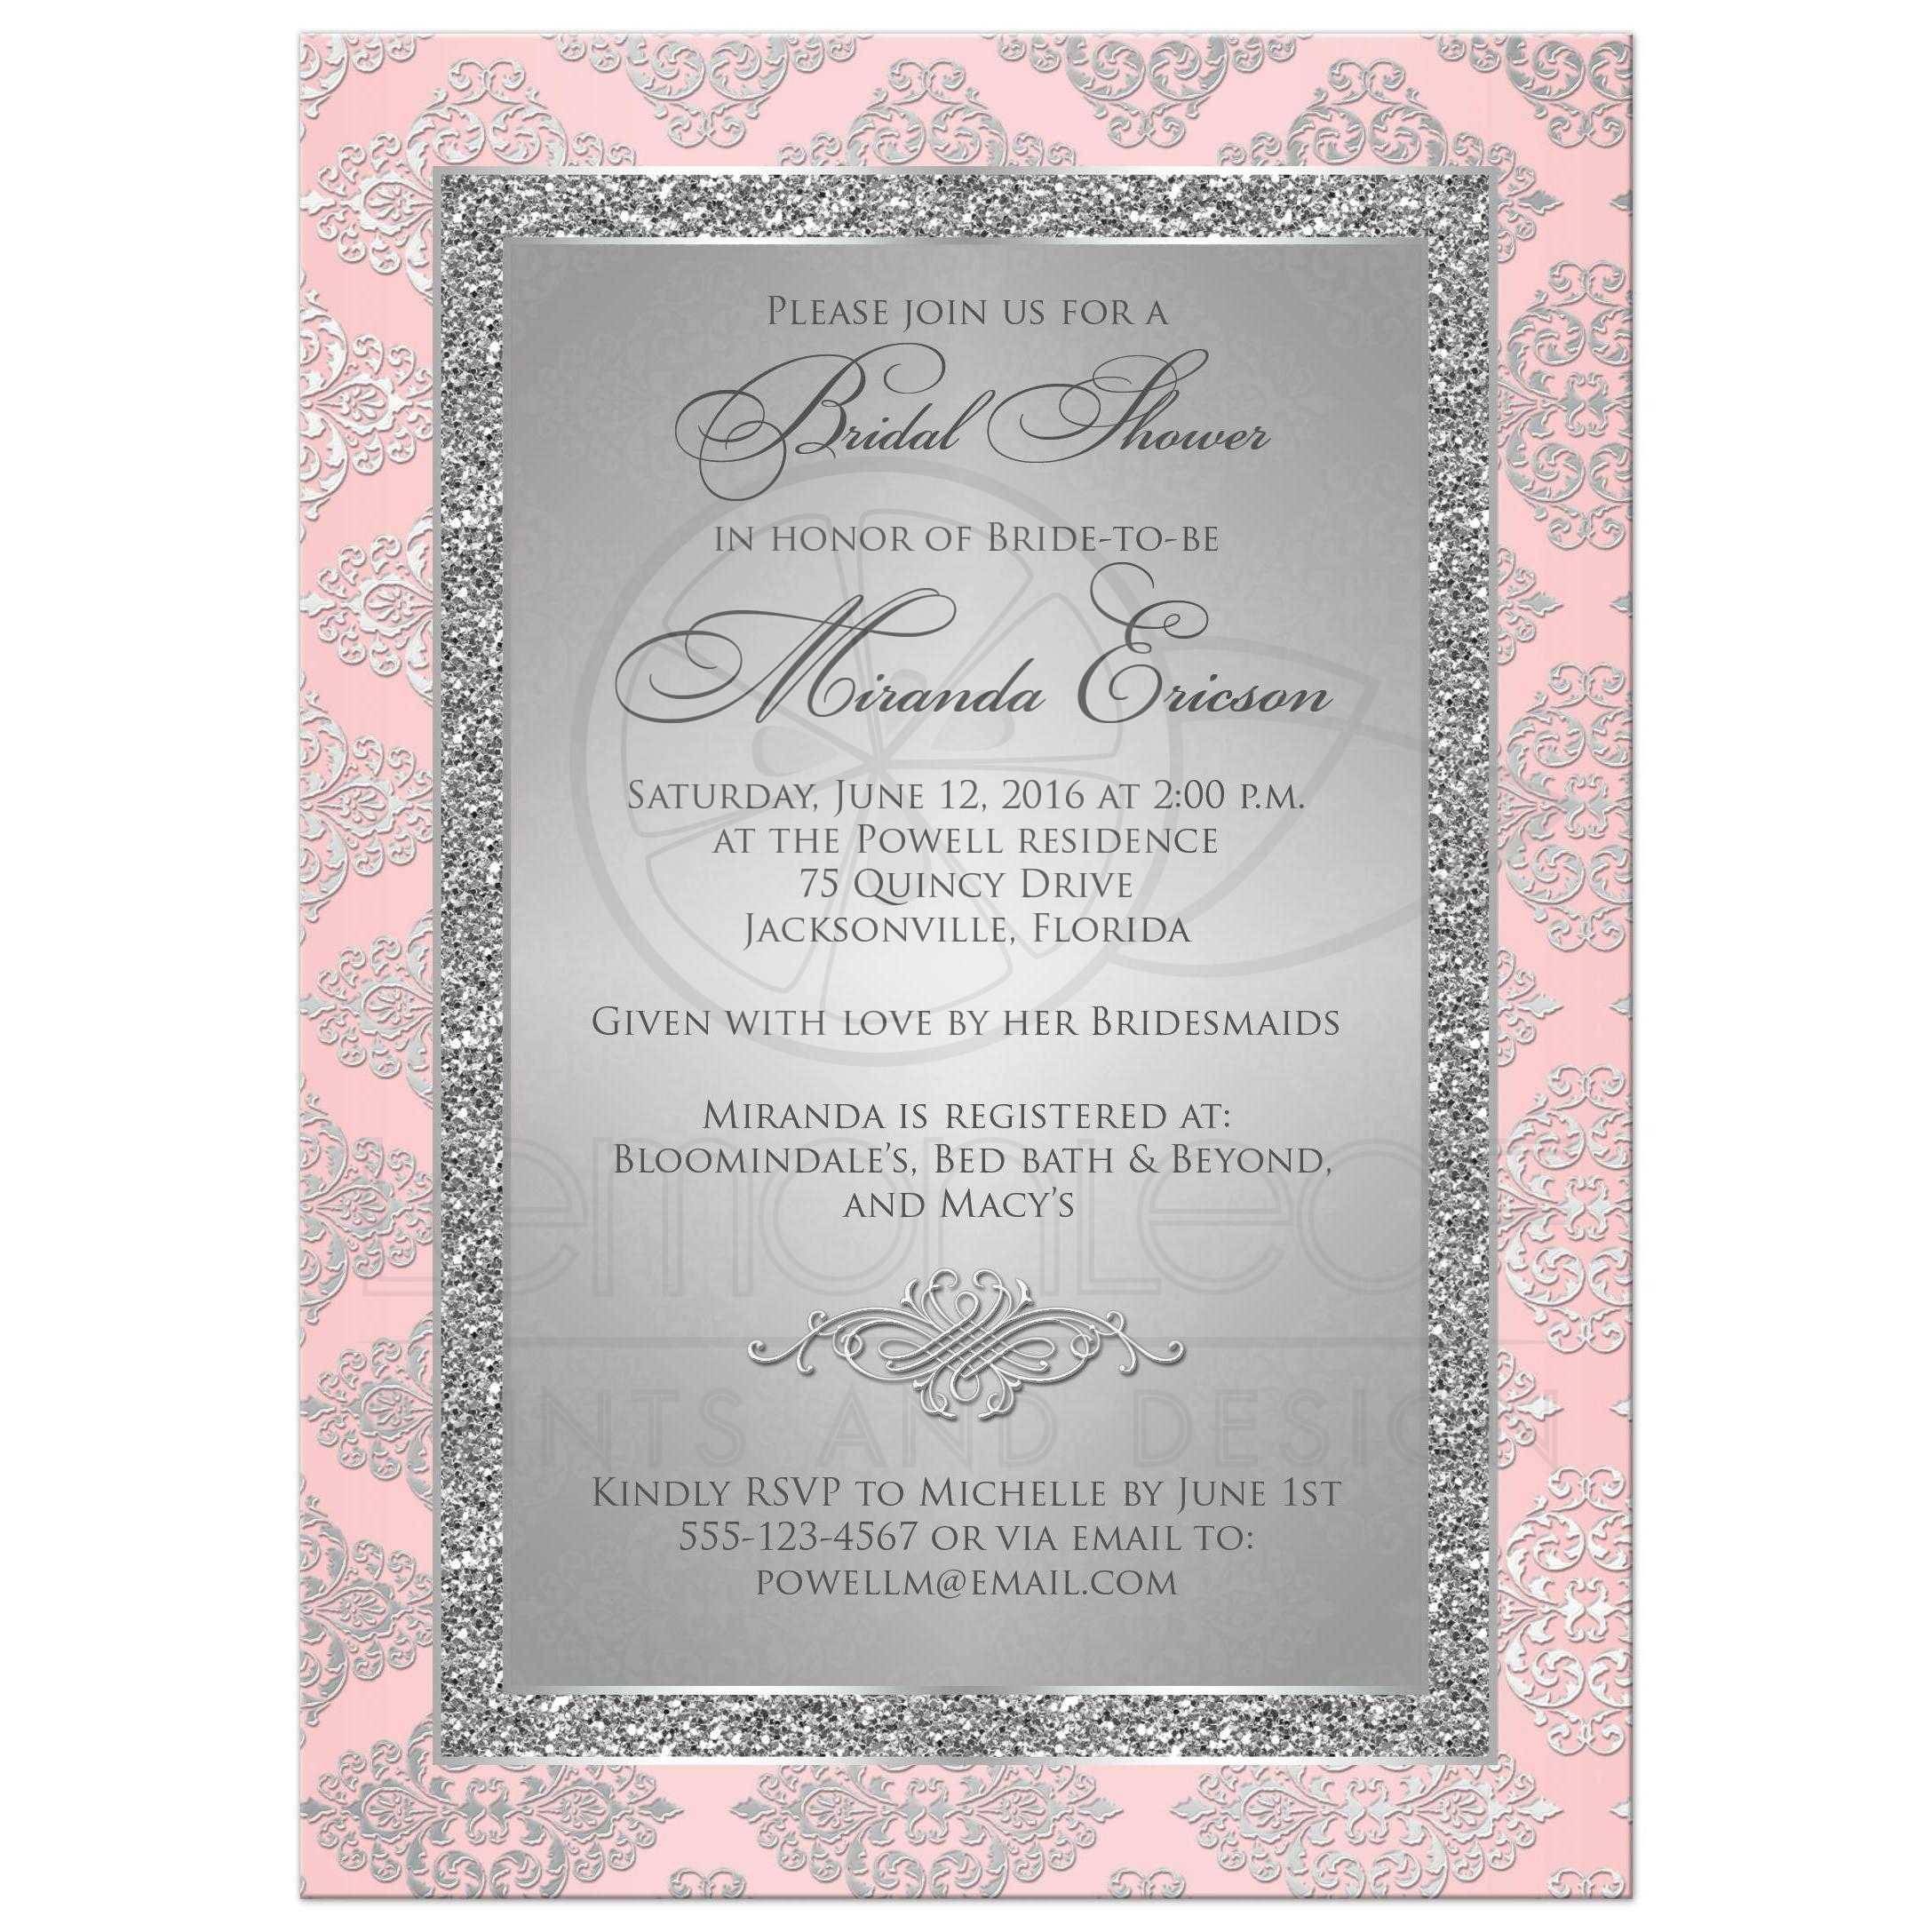 silver wedding shower invitations - 100 images - pink navy silver ...